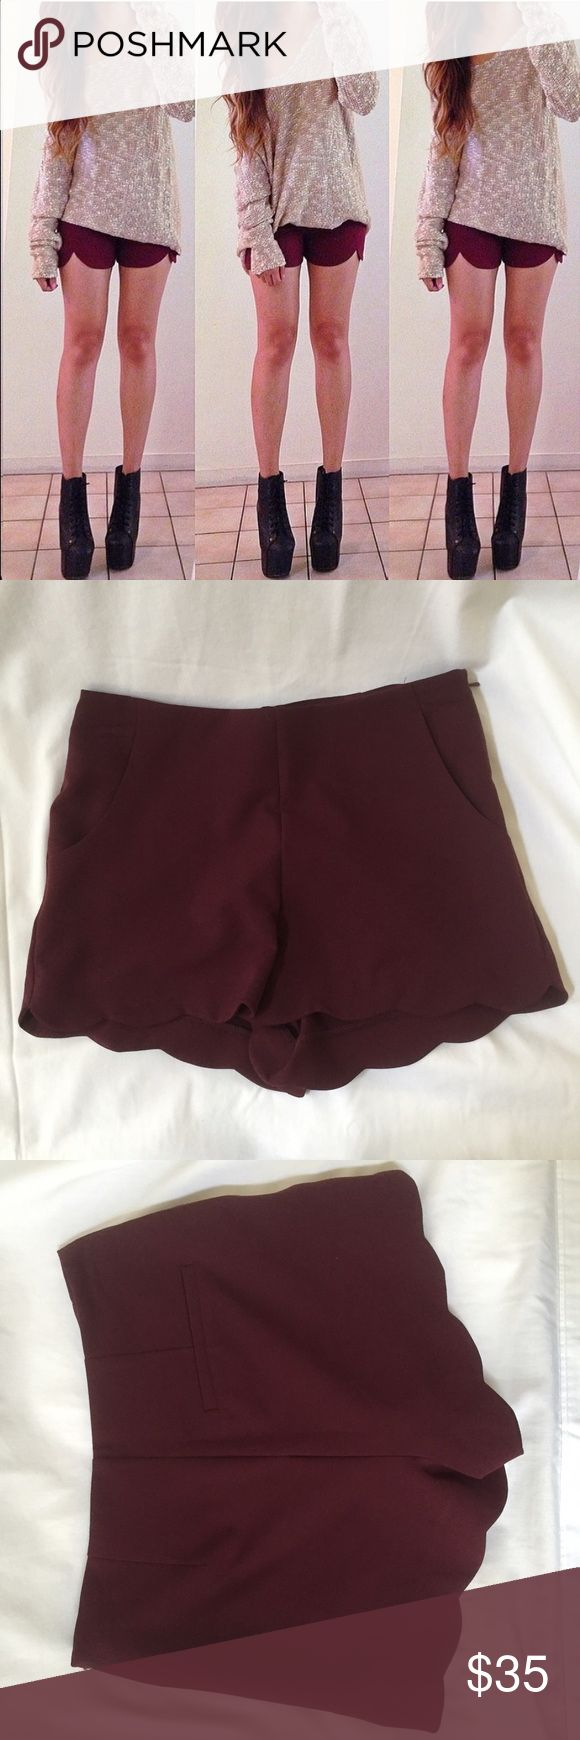 Asos burgundy shorts Never worn burgundy scalloped shorts with zipper on the side ASOS Petite Shorts